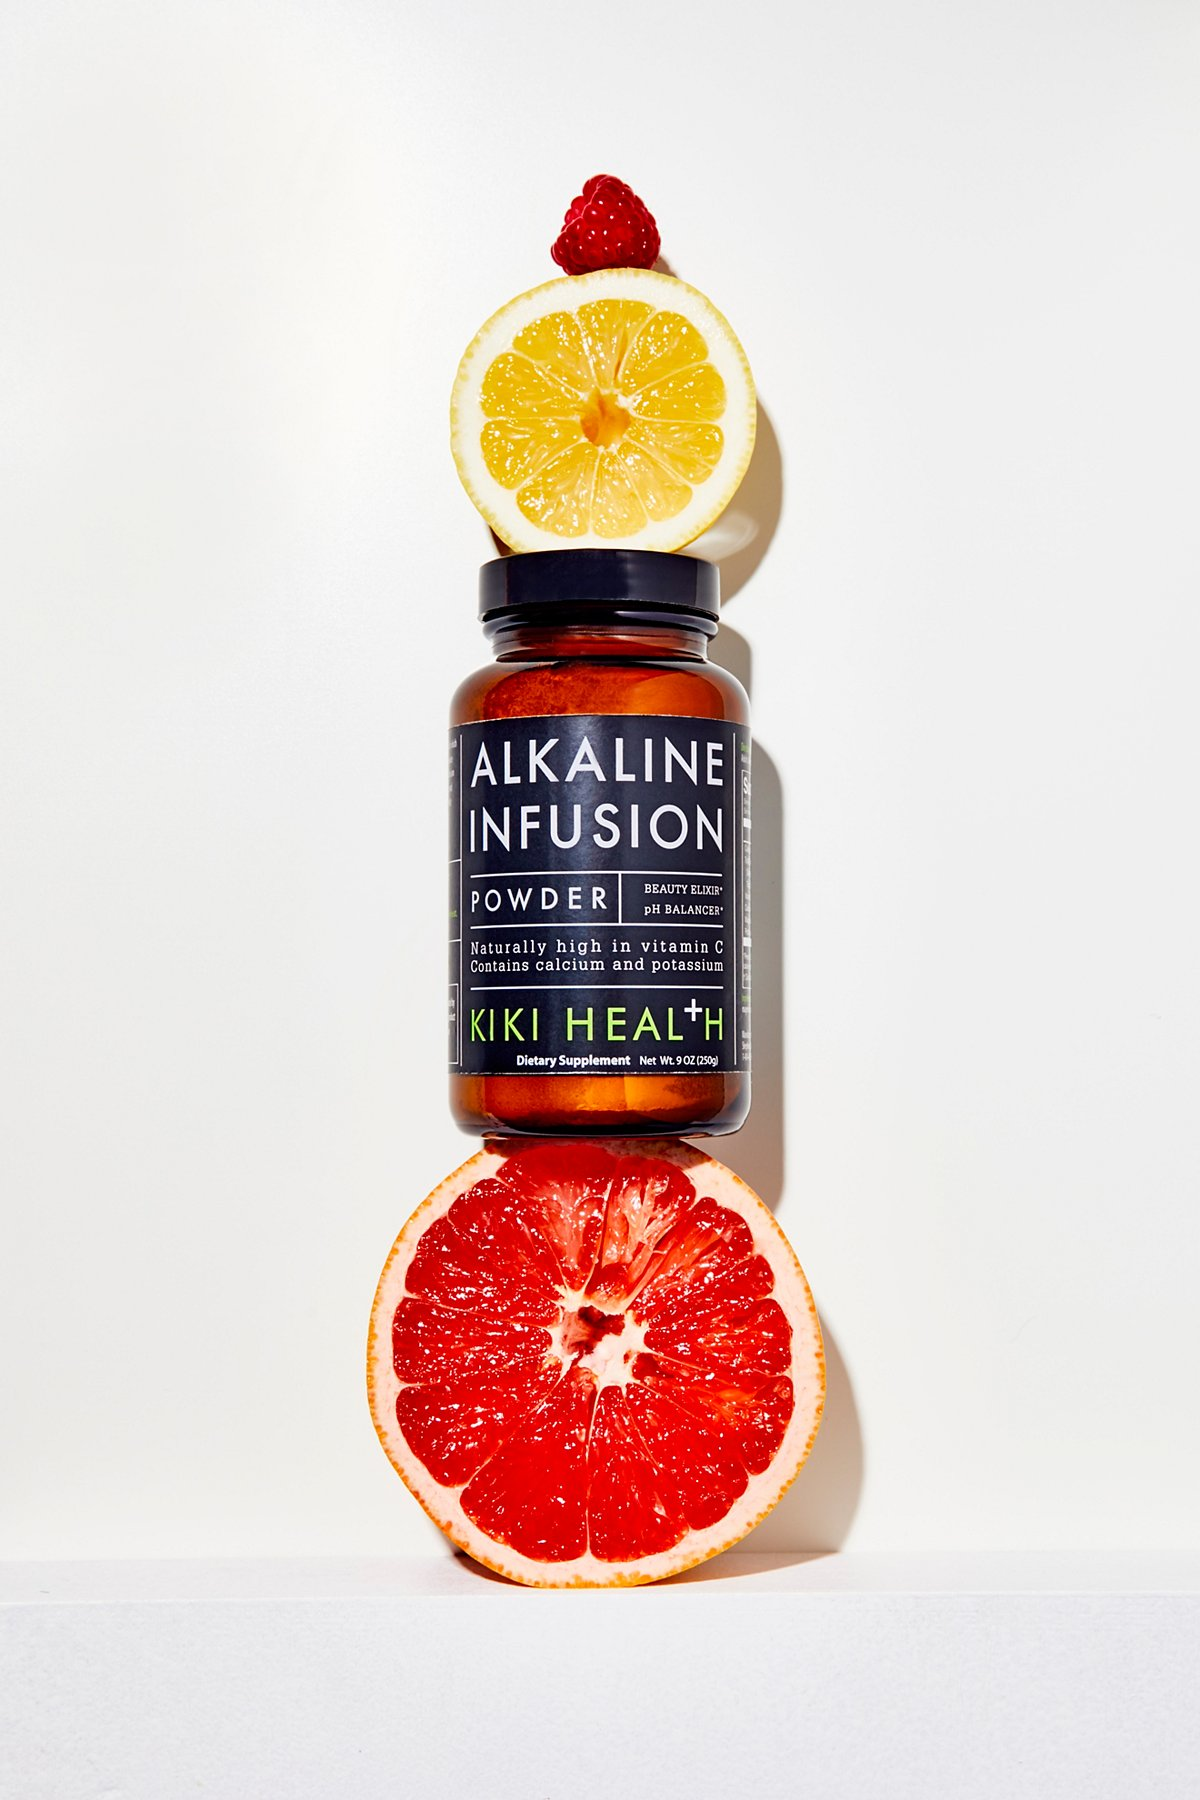 Alkaline Infusion